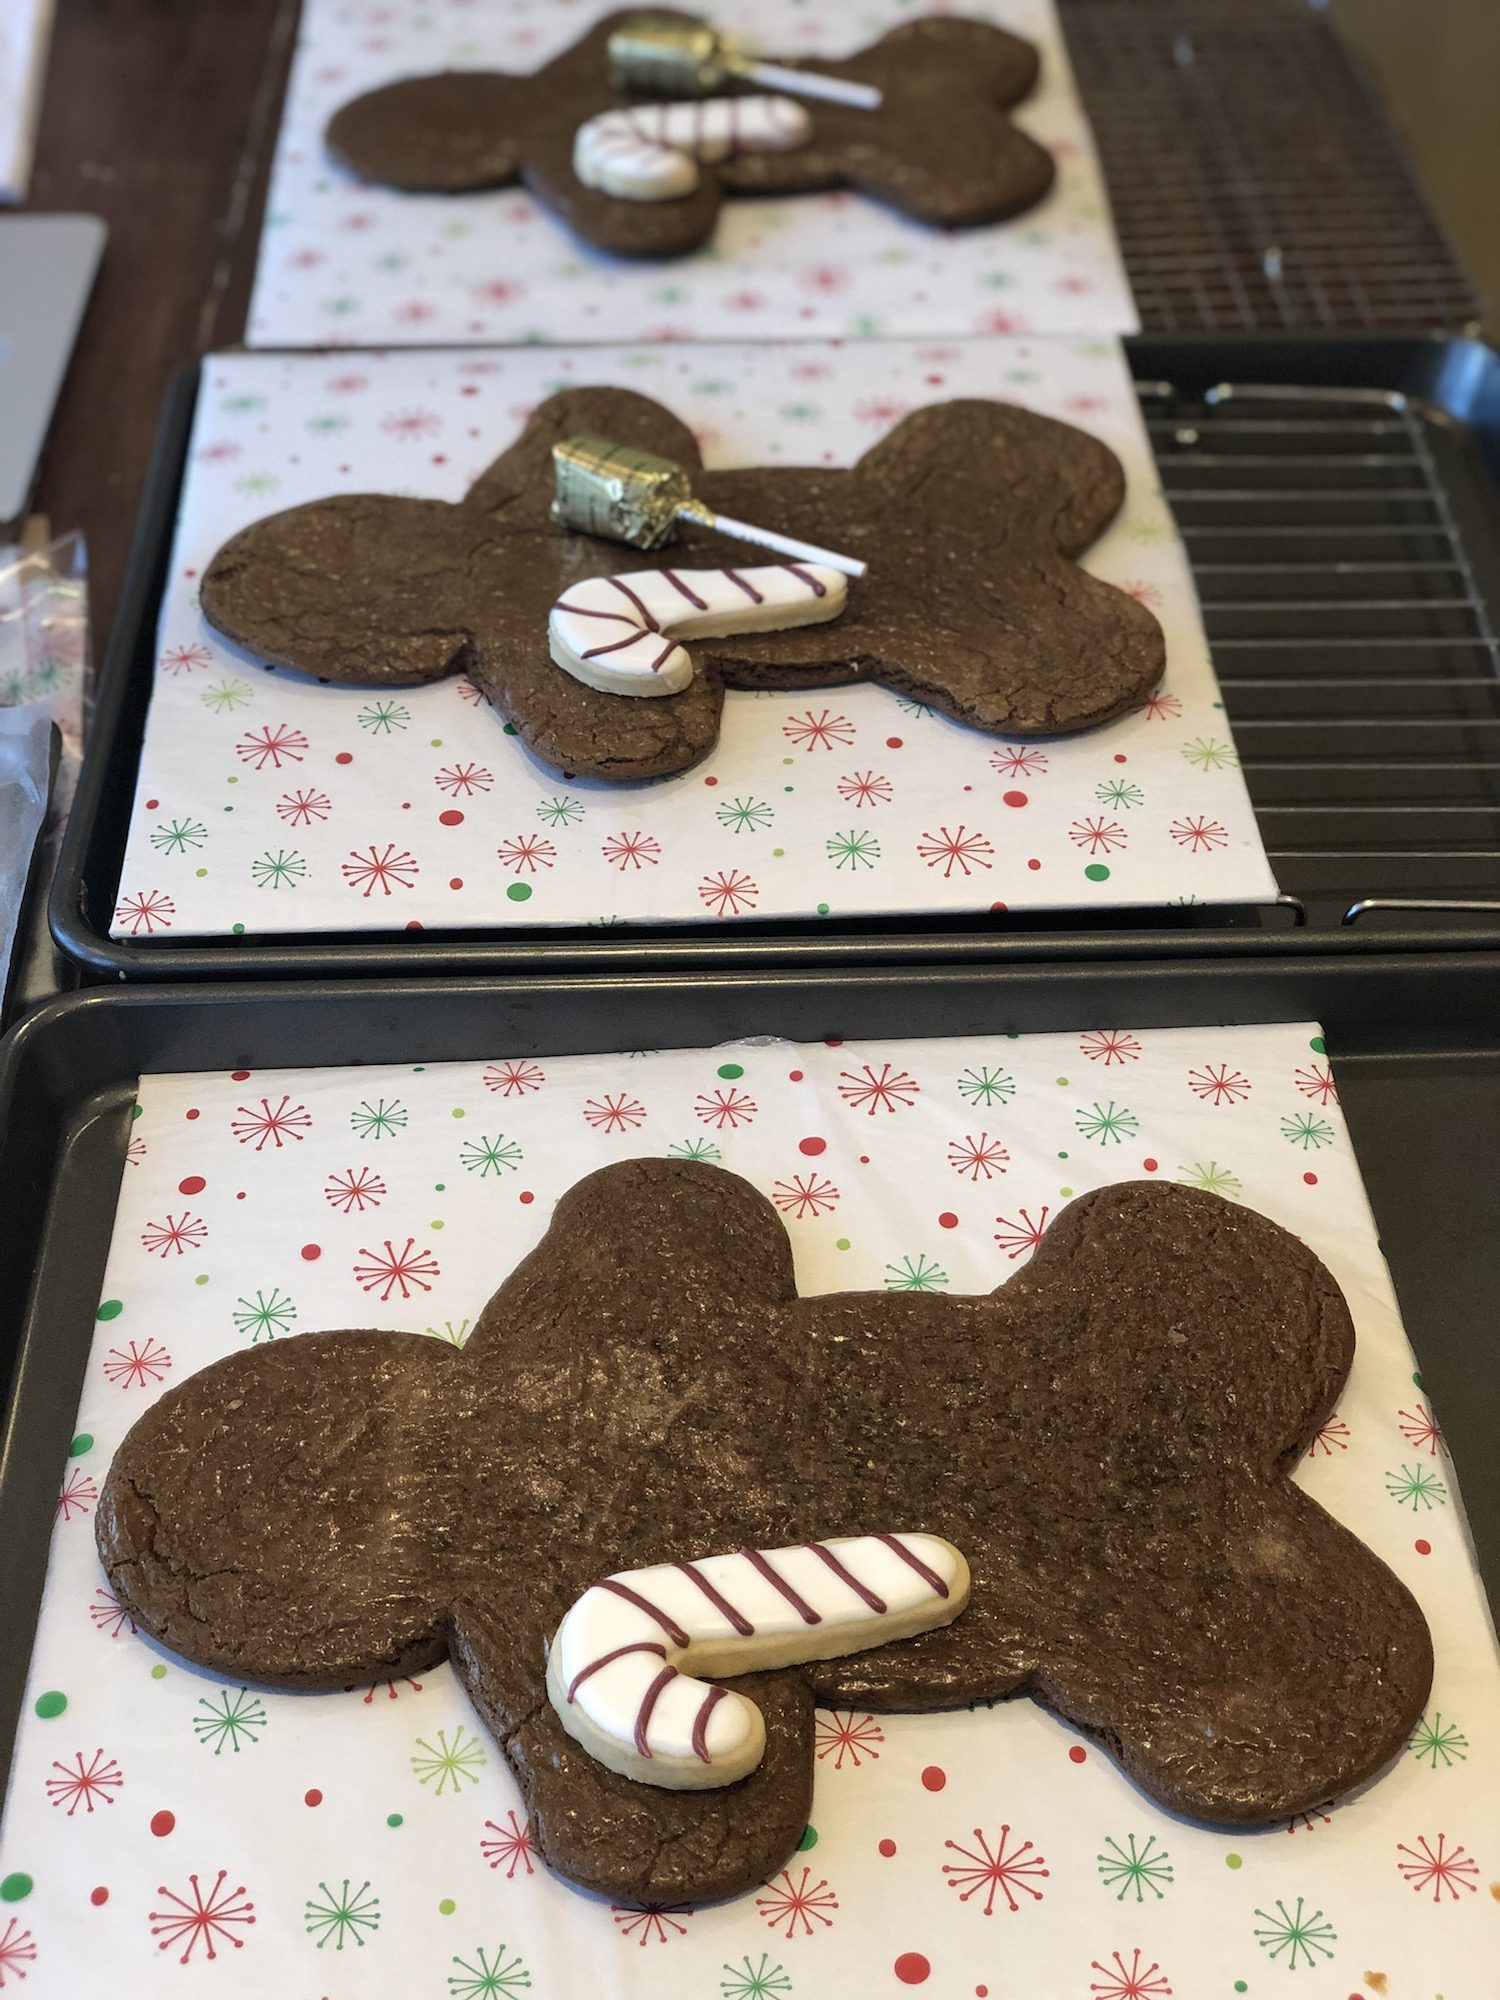 Find out how to make these adorable giant gingerbread cookies for Christmas or gift giving